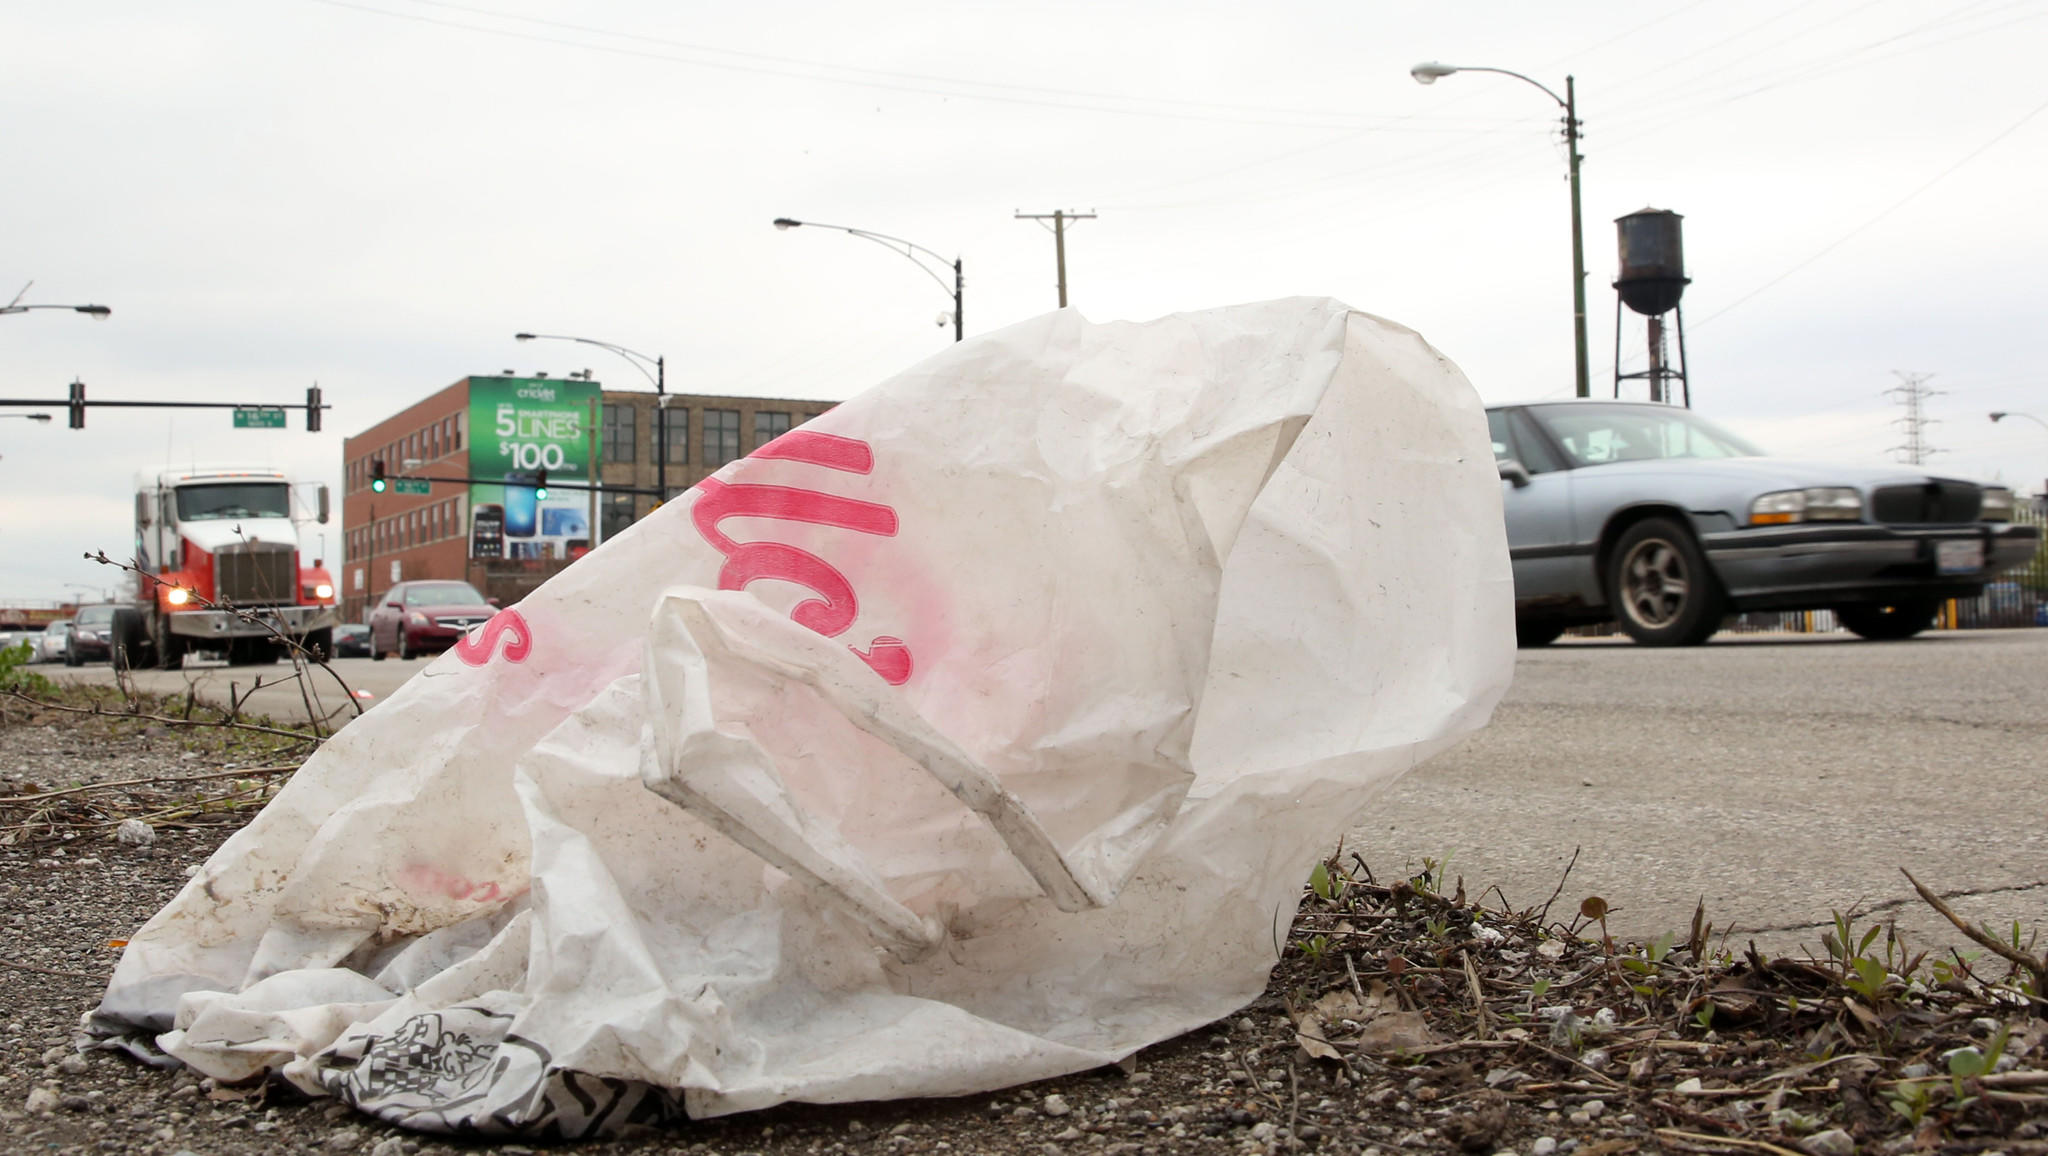 A plastic shopping bag lies along the road as traffic rolls northbound on Western Ave. between 17th and 18th streets near the Pilsen neighborhood on Wednesday.